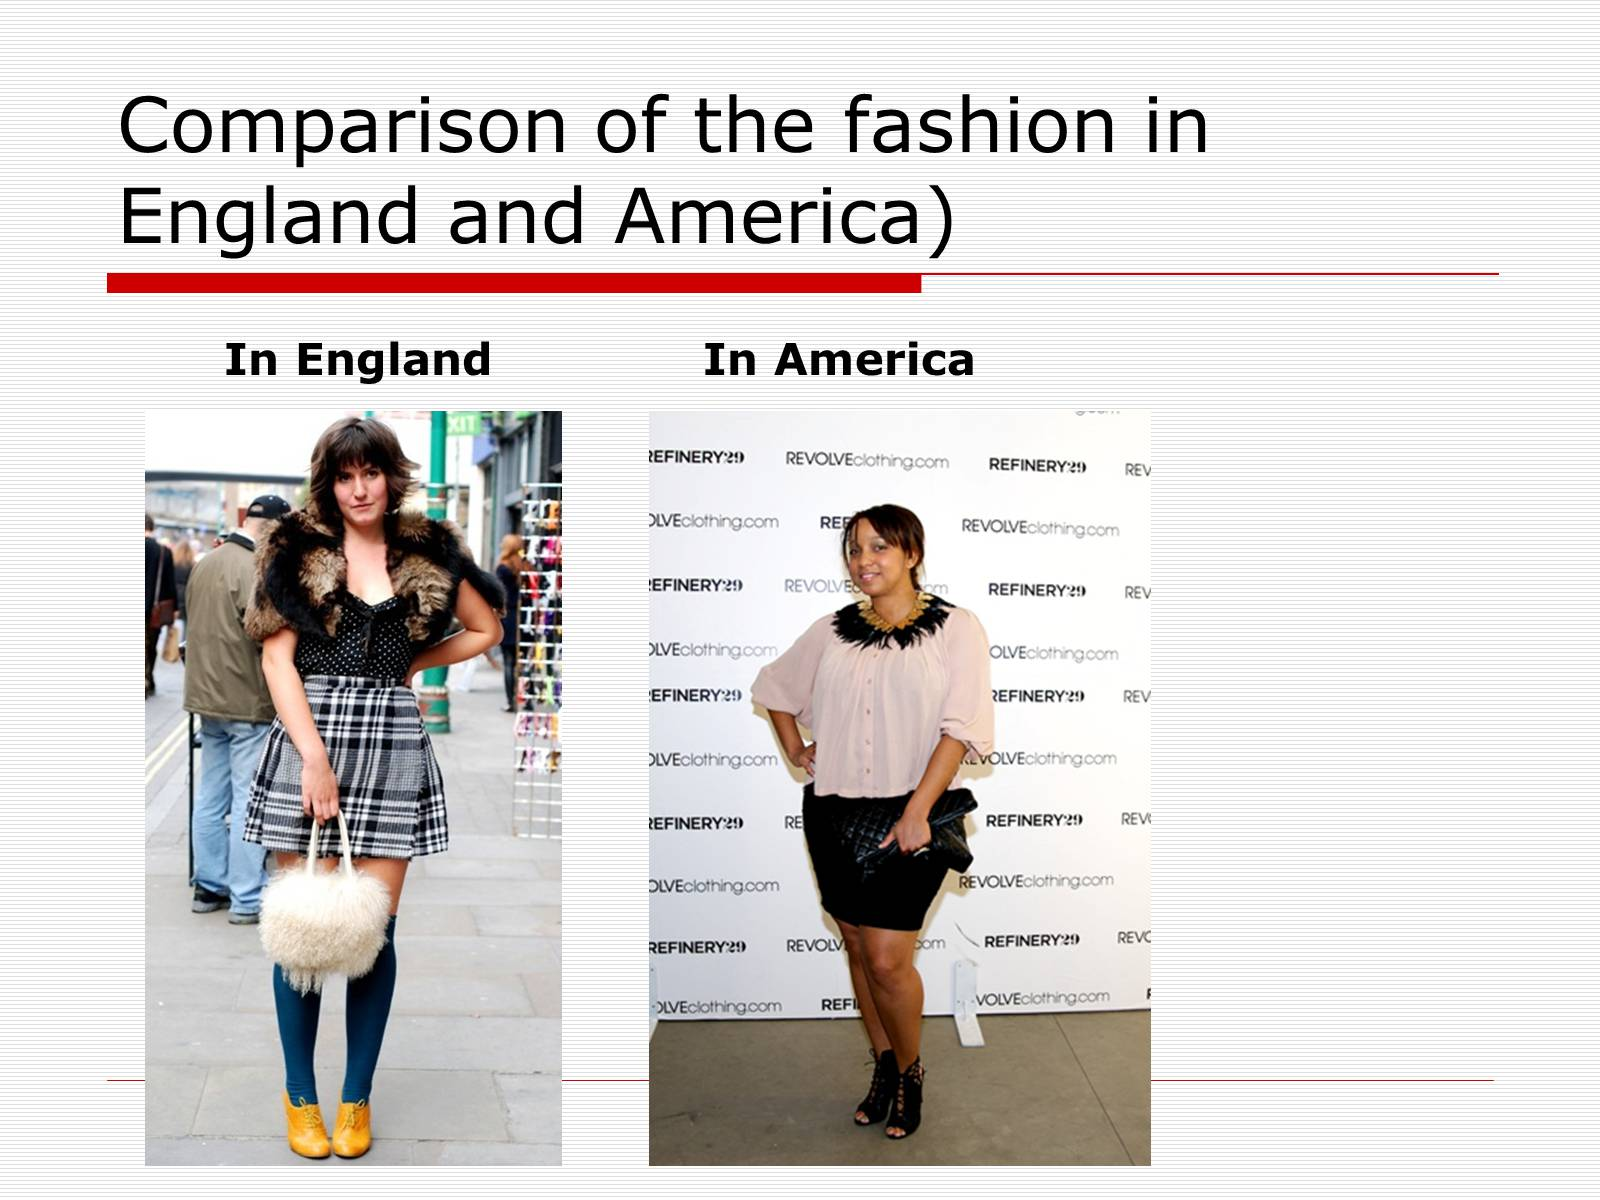 Презентація на тему «Comparison of the fashion in England and America» - Слайд #11